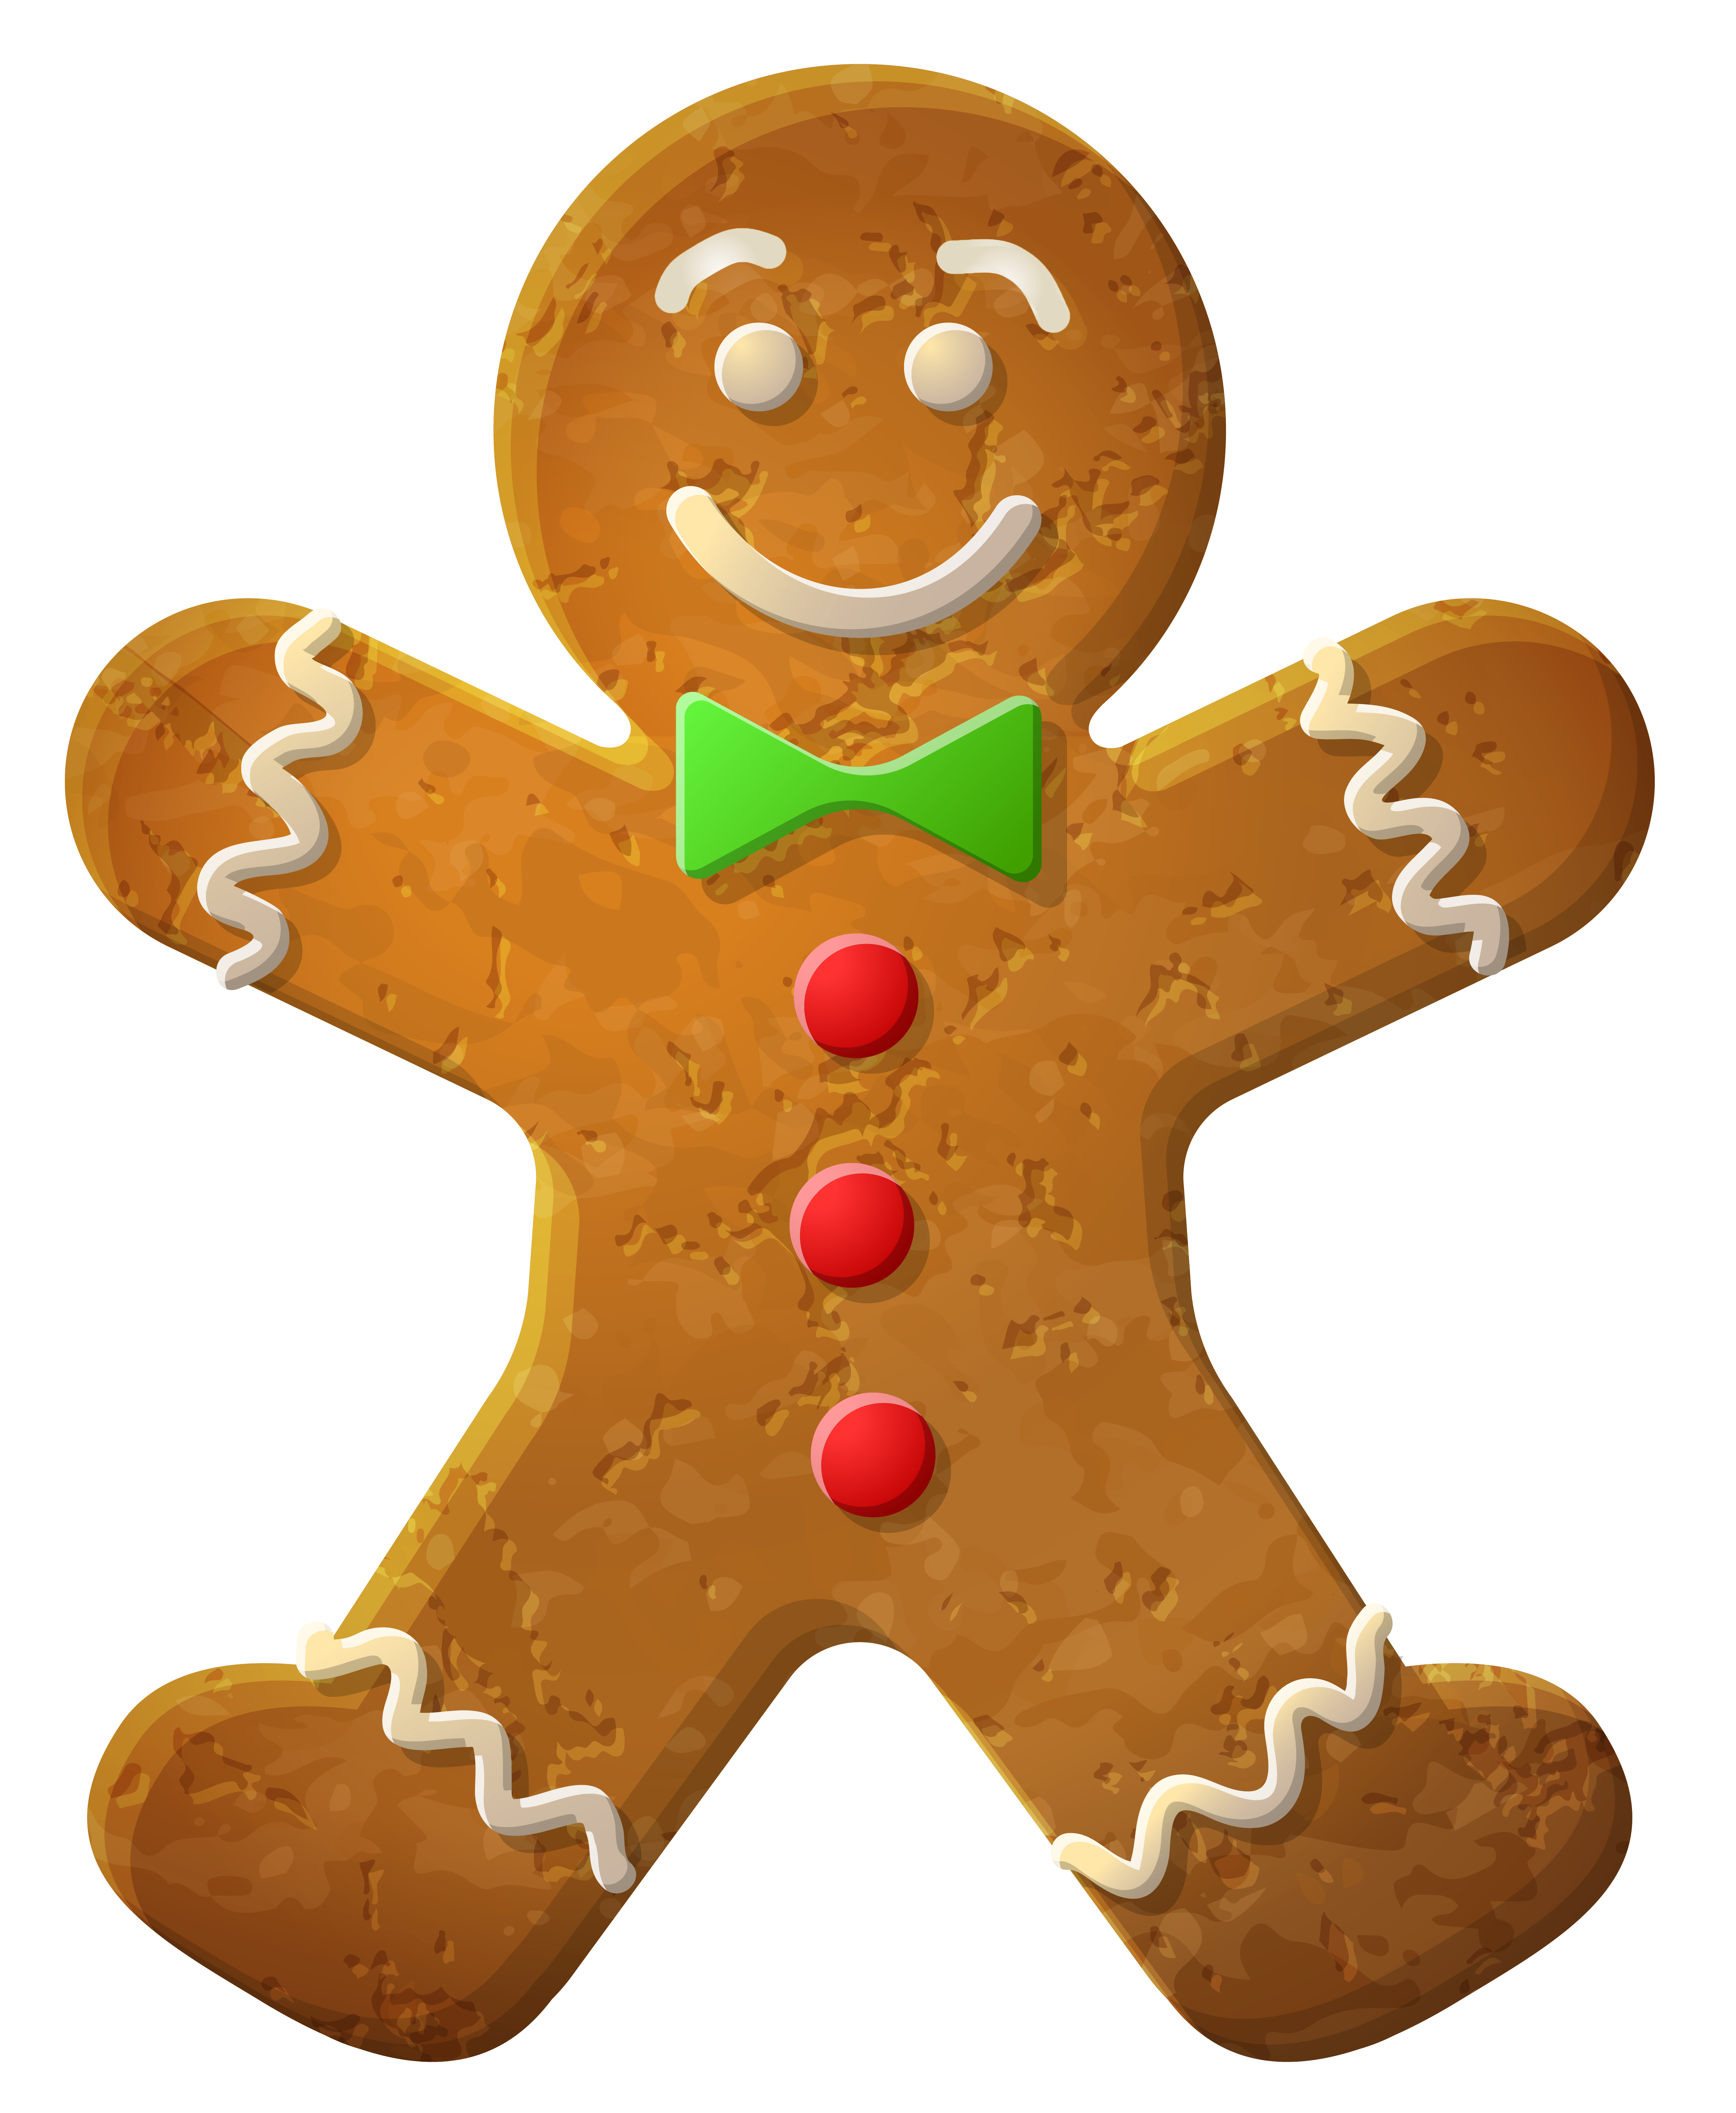 Gingerbread clipart cookie decorating #14